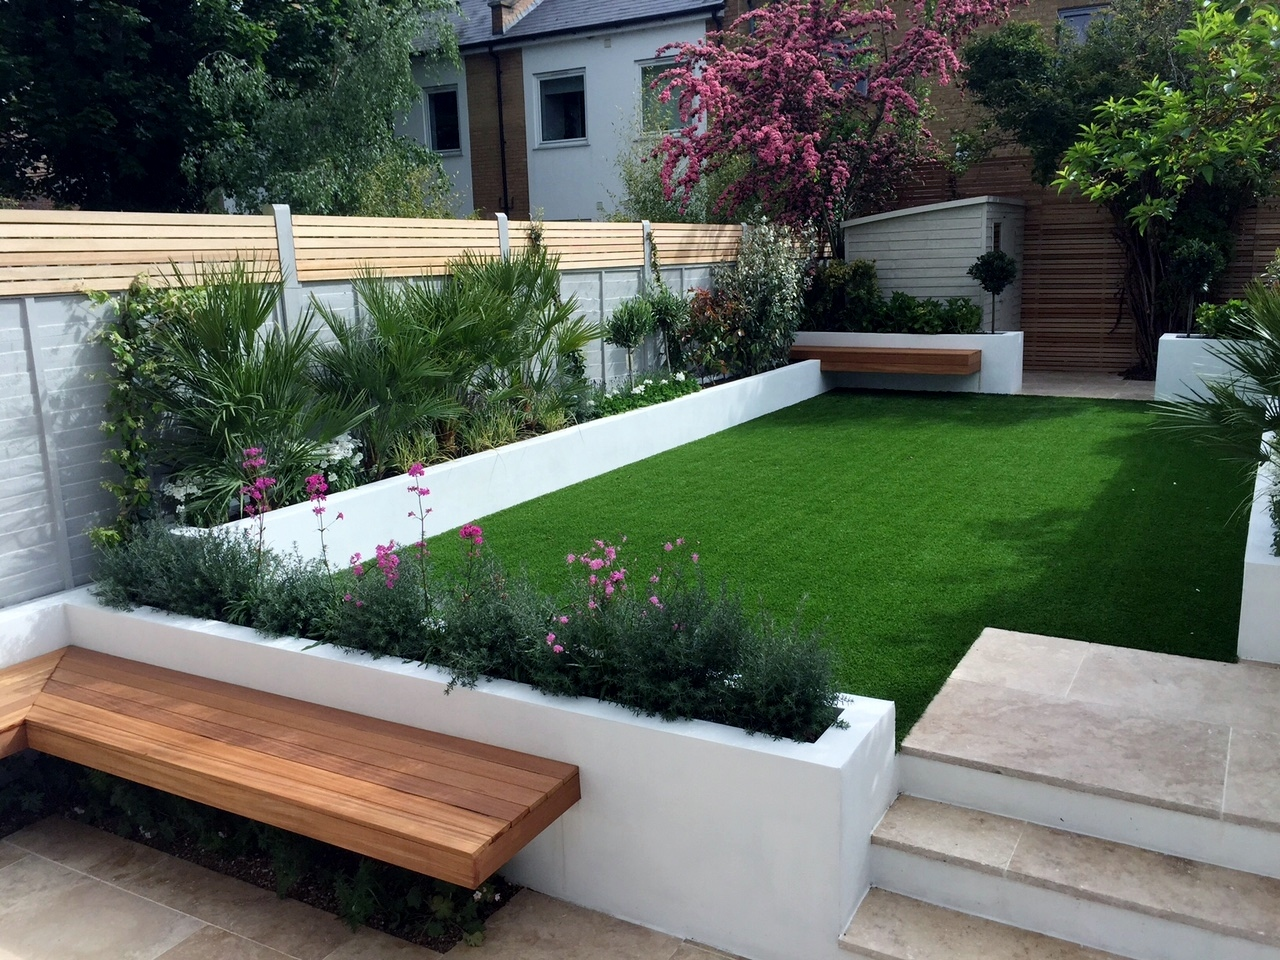 Modern garden design ideas fulham chelsea battersea for Top garden designers